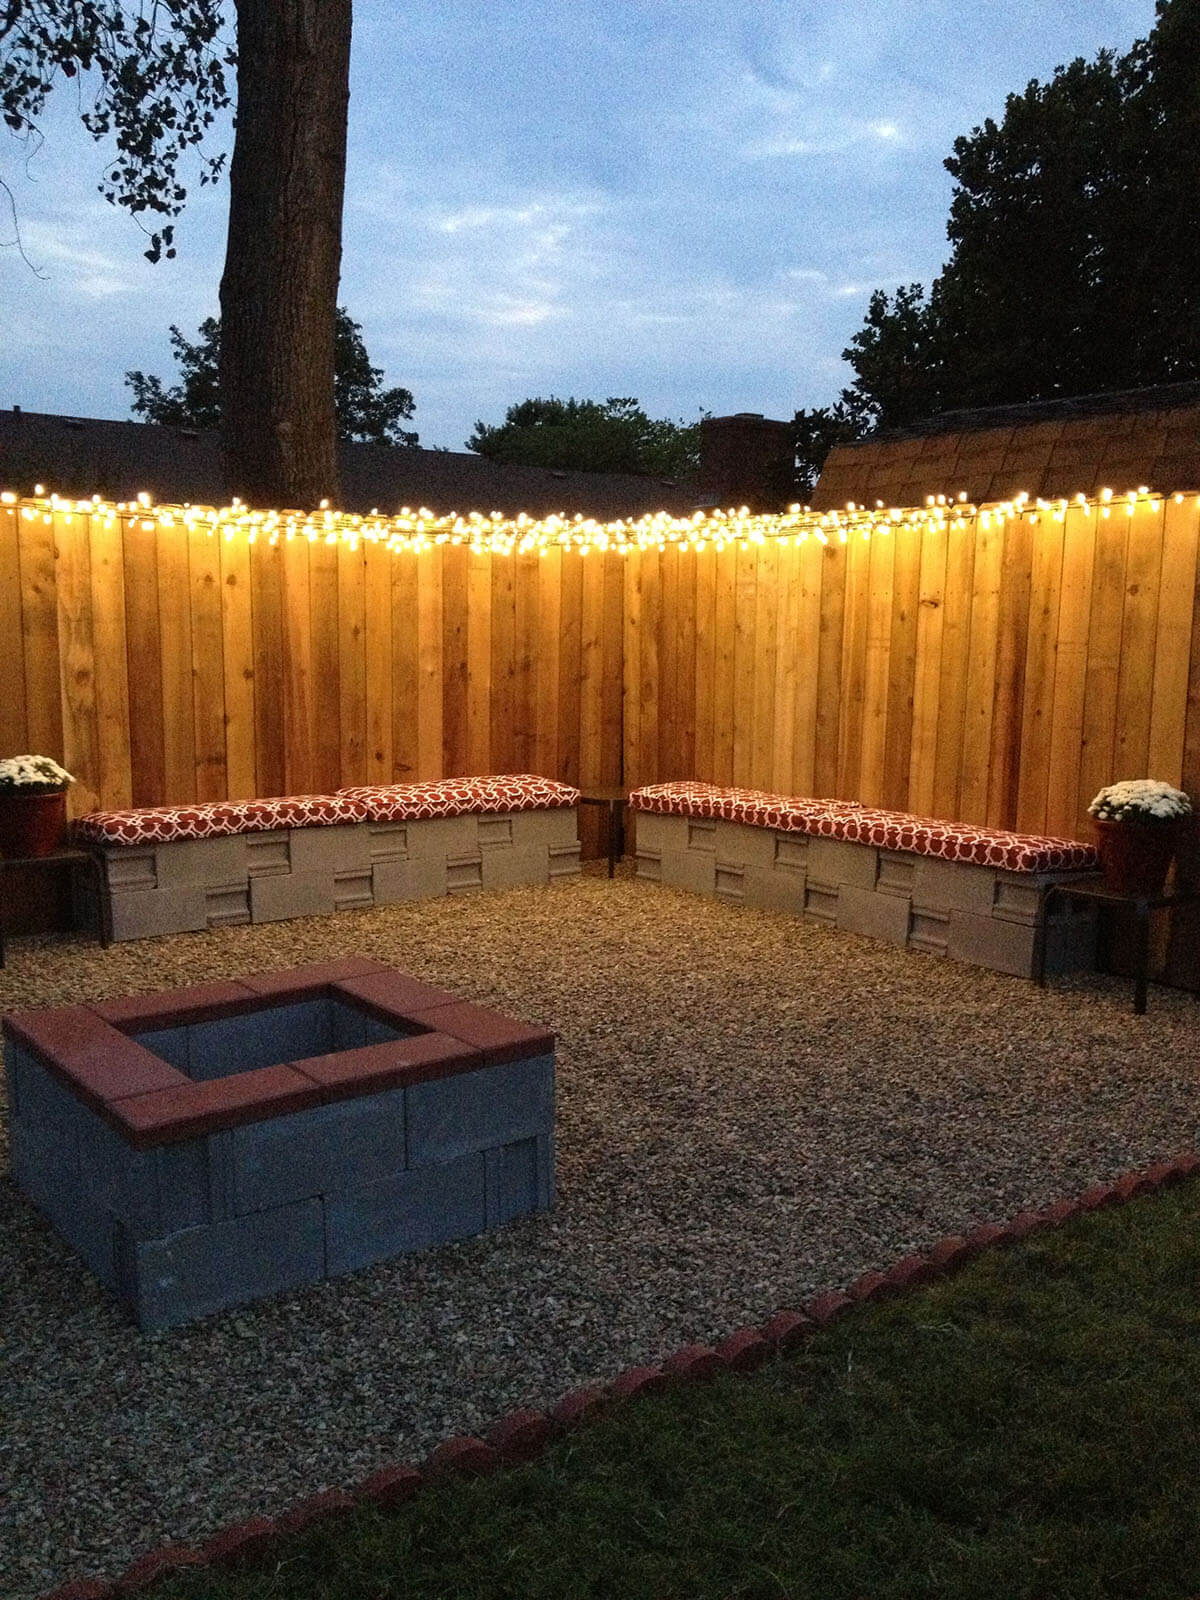 Christmas Lights Along the Top of the Fence